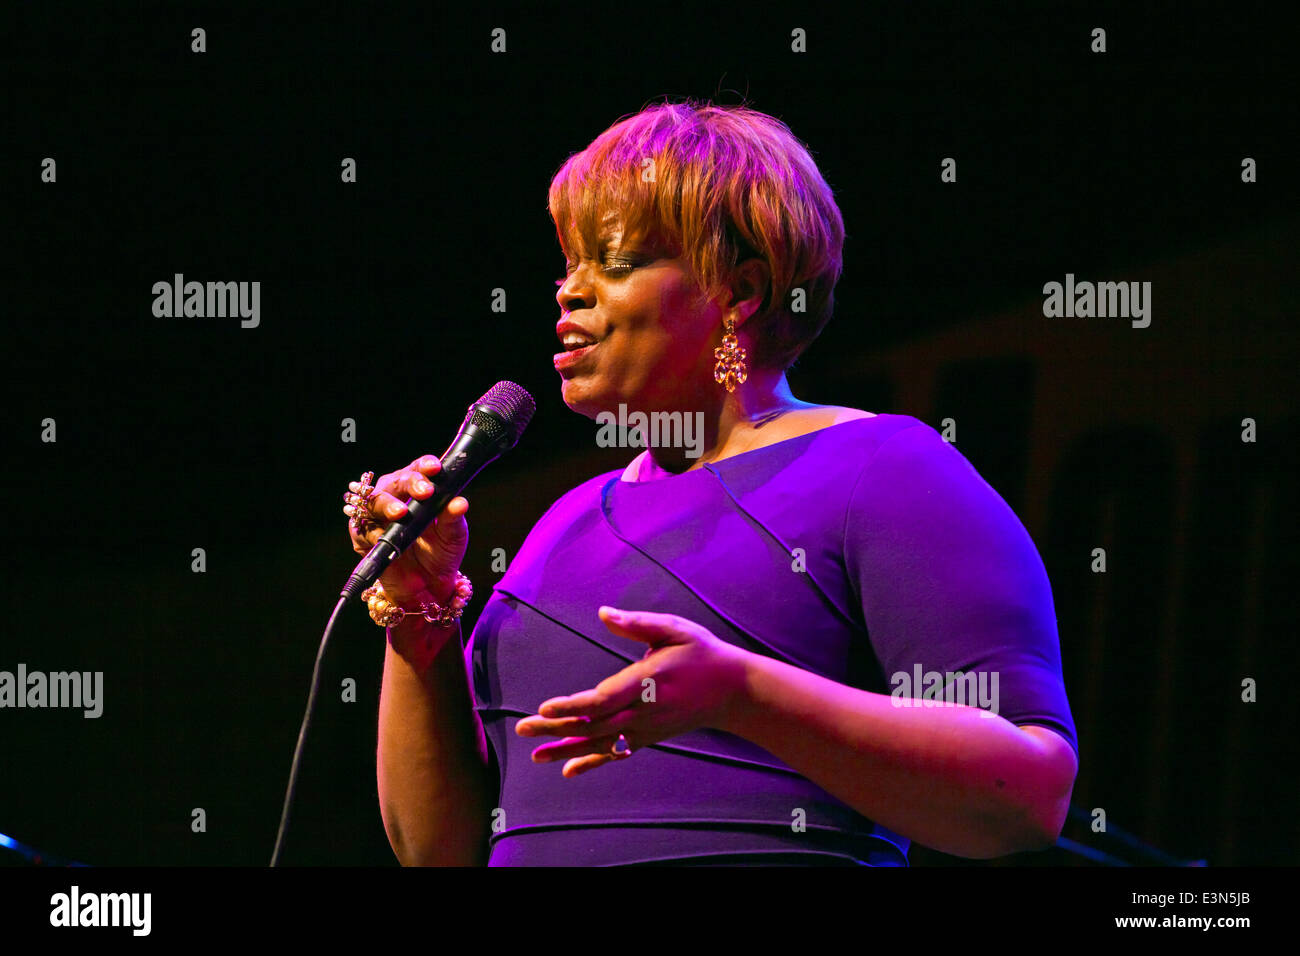 DIANNE REEVES sings on the Jimmy Lyons Stage - 2010 MONTEREY JAZZ FESTIVAL, CALIFORNIA - Stock Image